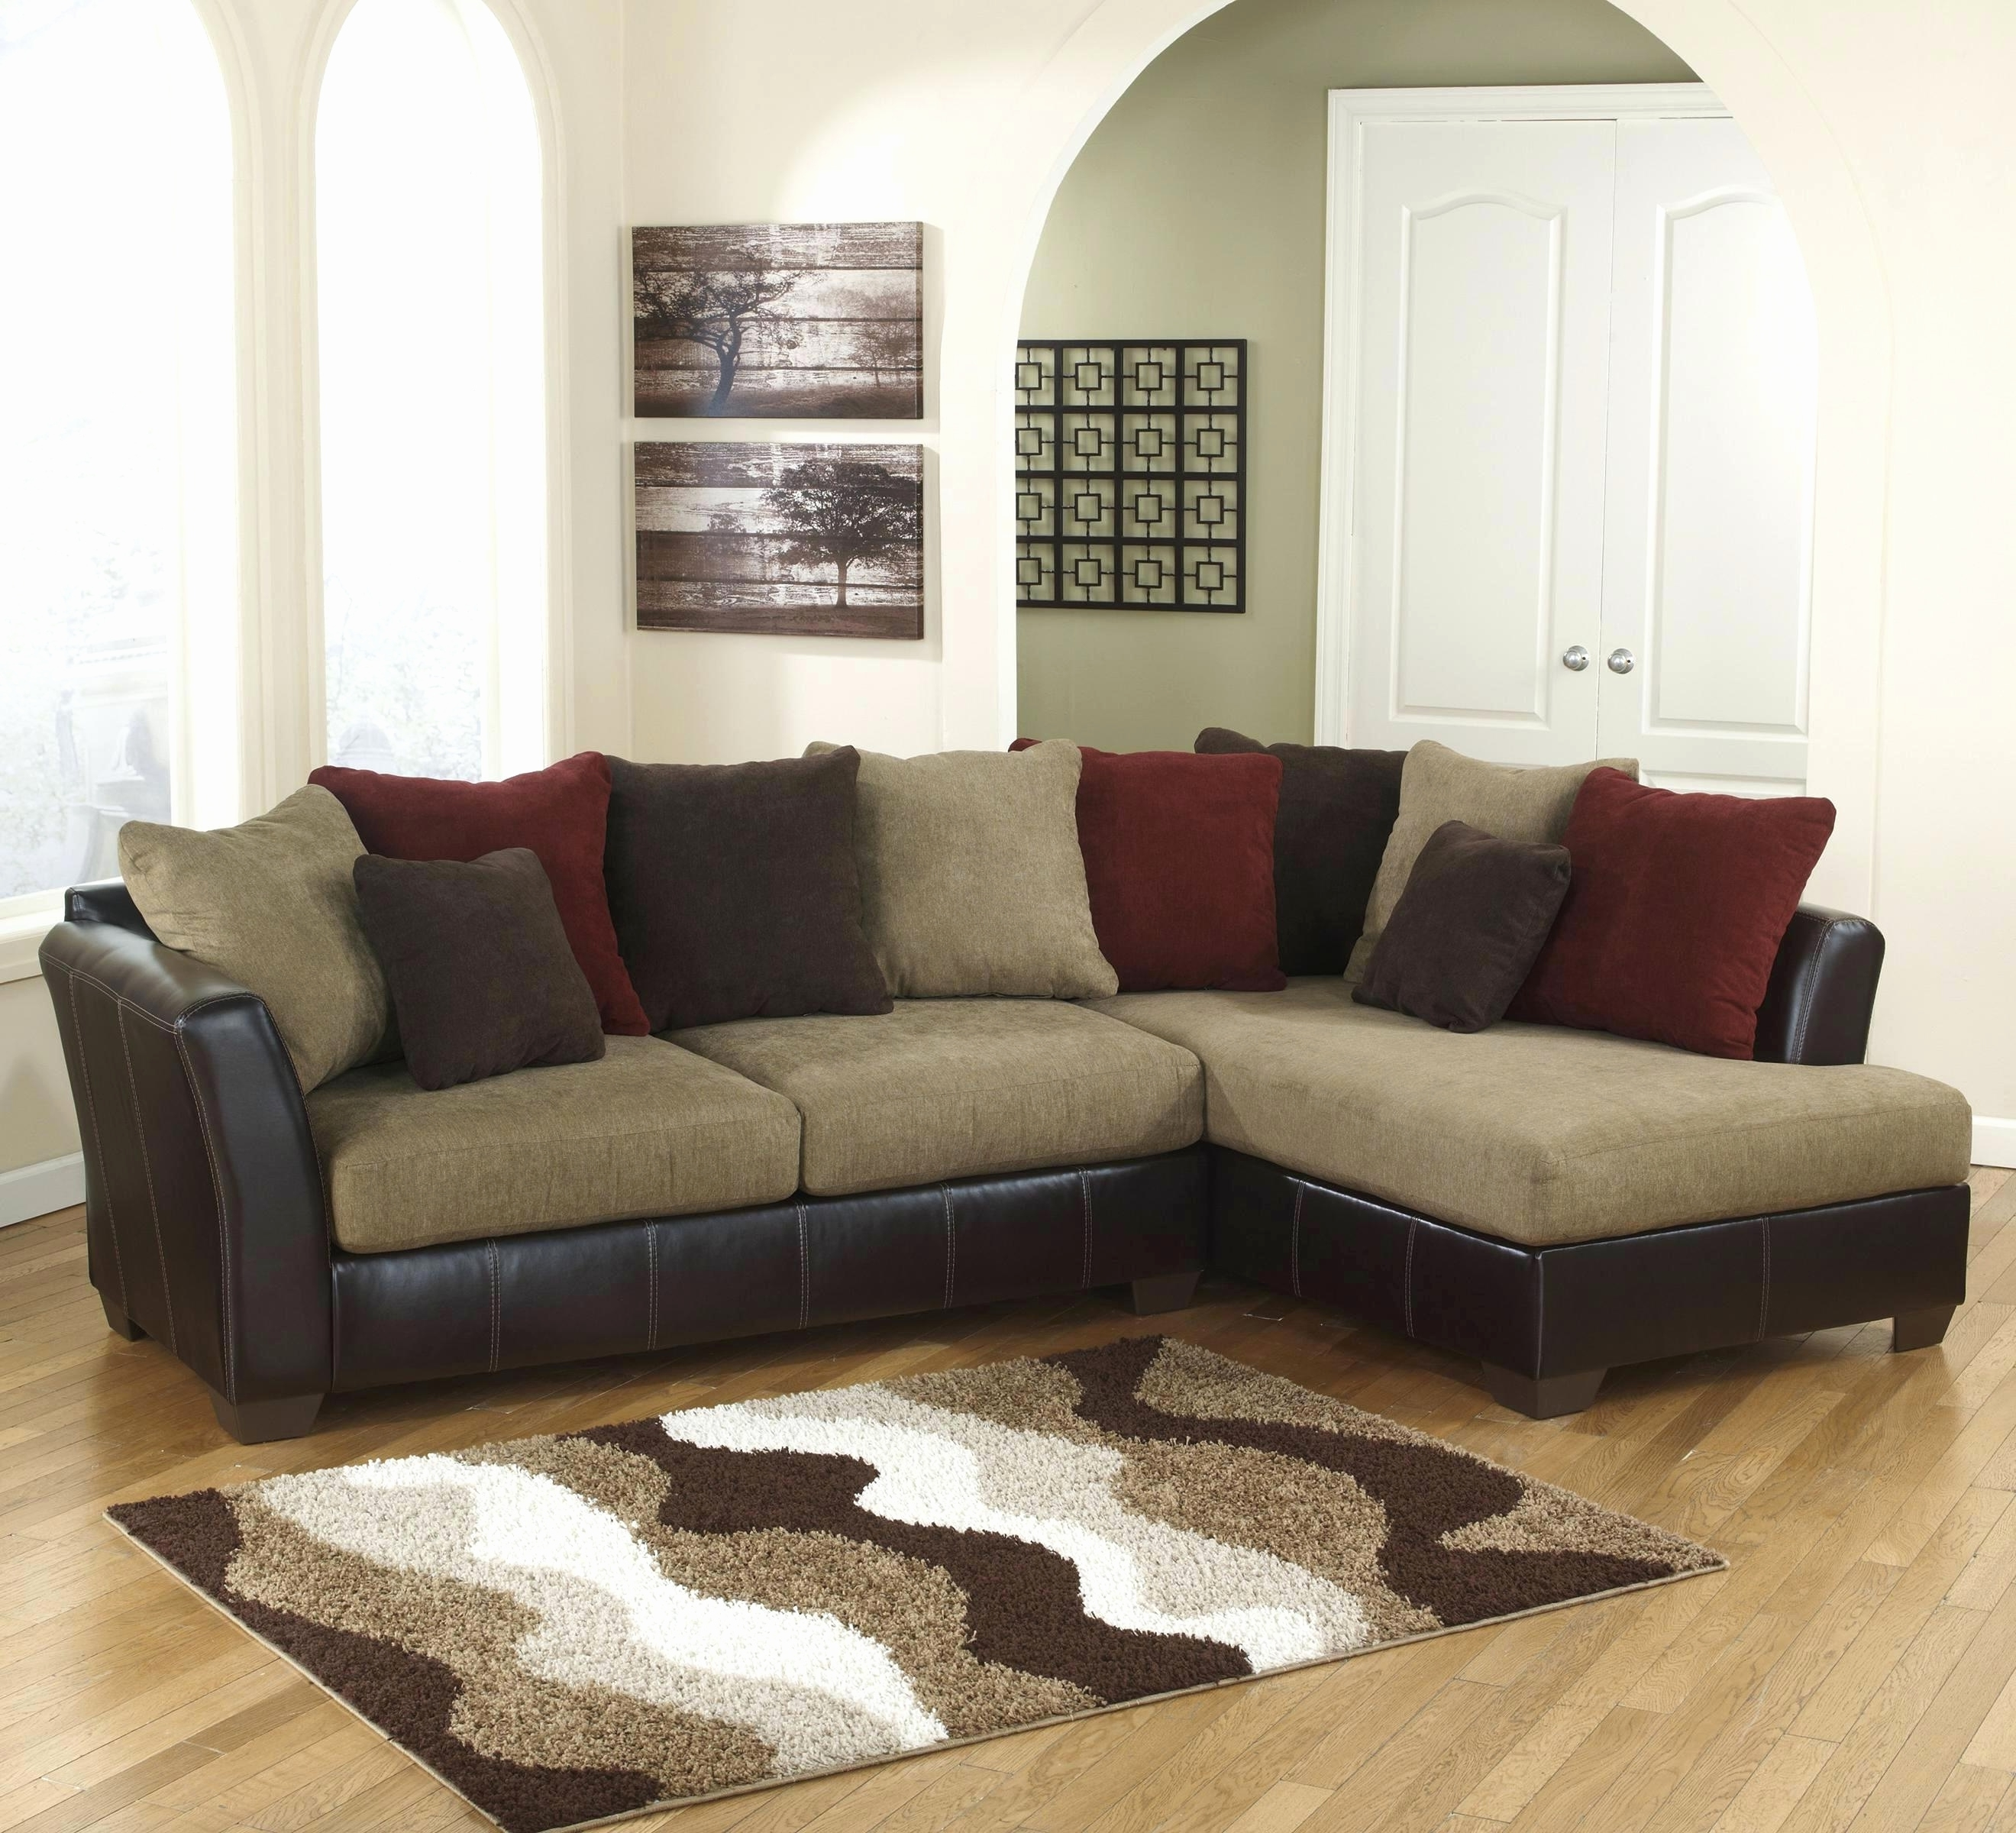 Sectional Sofas At Ashley With Most Up To Date Furniture : New Ashley Furniture Sectional Sofas 2018 E (View 18 of 20)